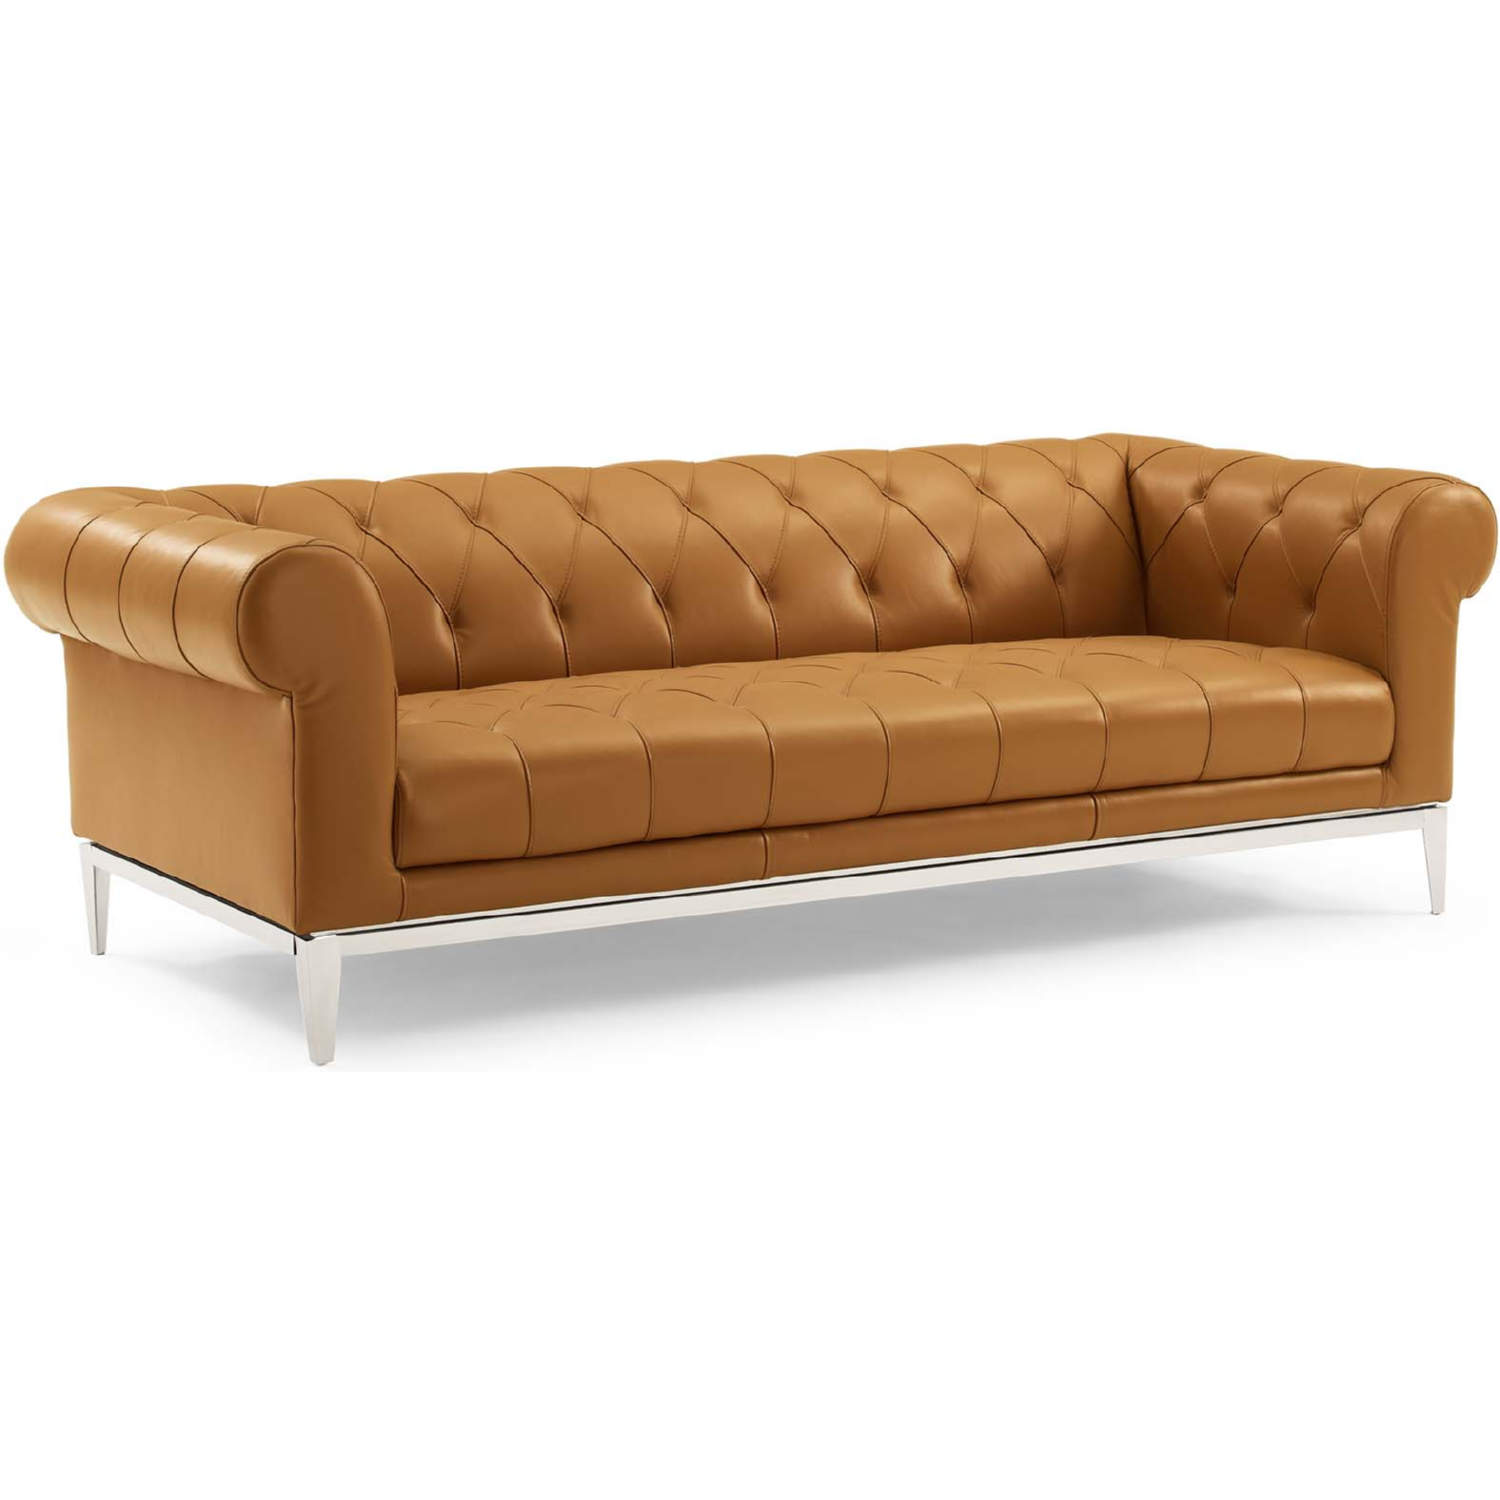 Idyll Chesterfield Sofa In Tufted Tan Leather Stainless By Modway